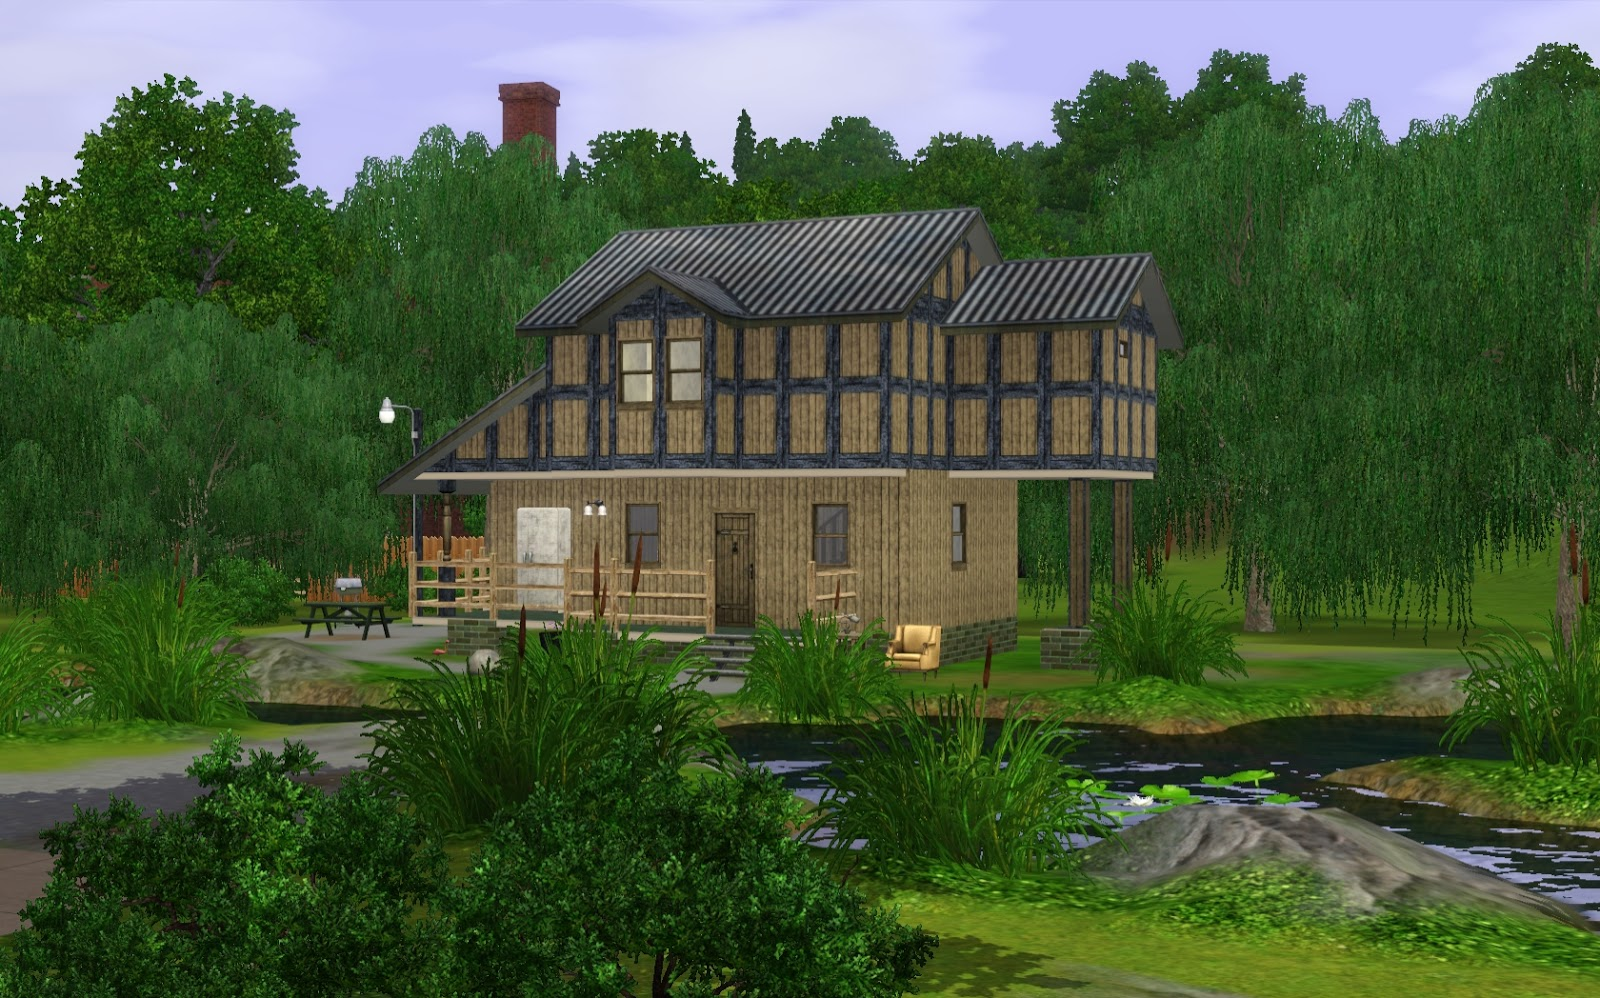 Summers Little Sims 3 Garden Sunset Valley The Sims 3 Base Game List of Houses